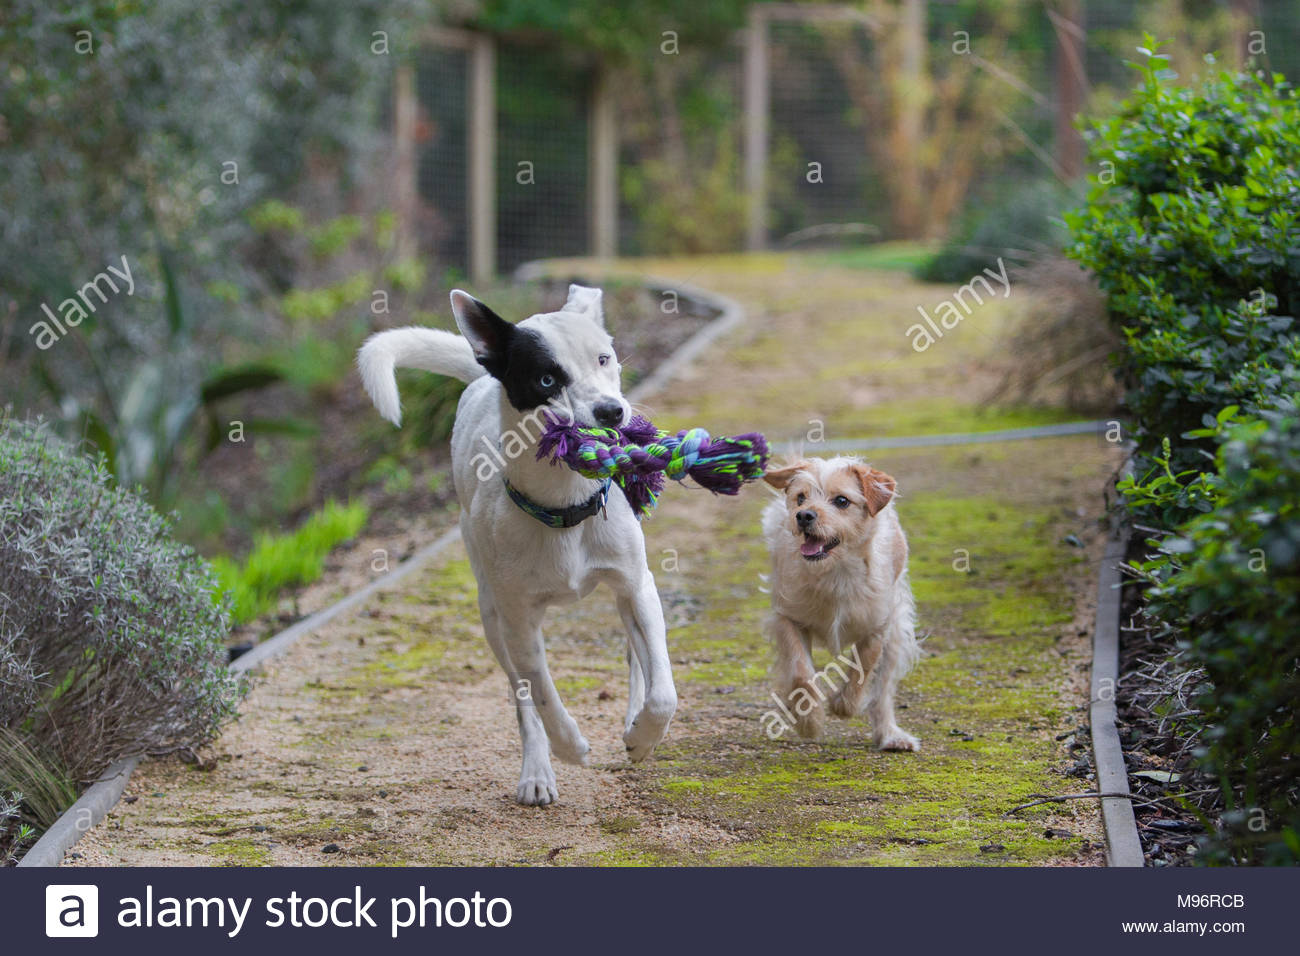 Two dogs running down path holding a rope toy - Stock Image